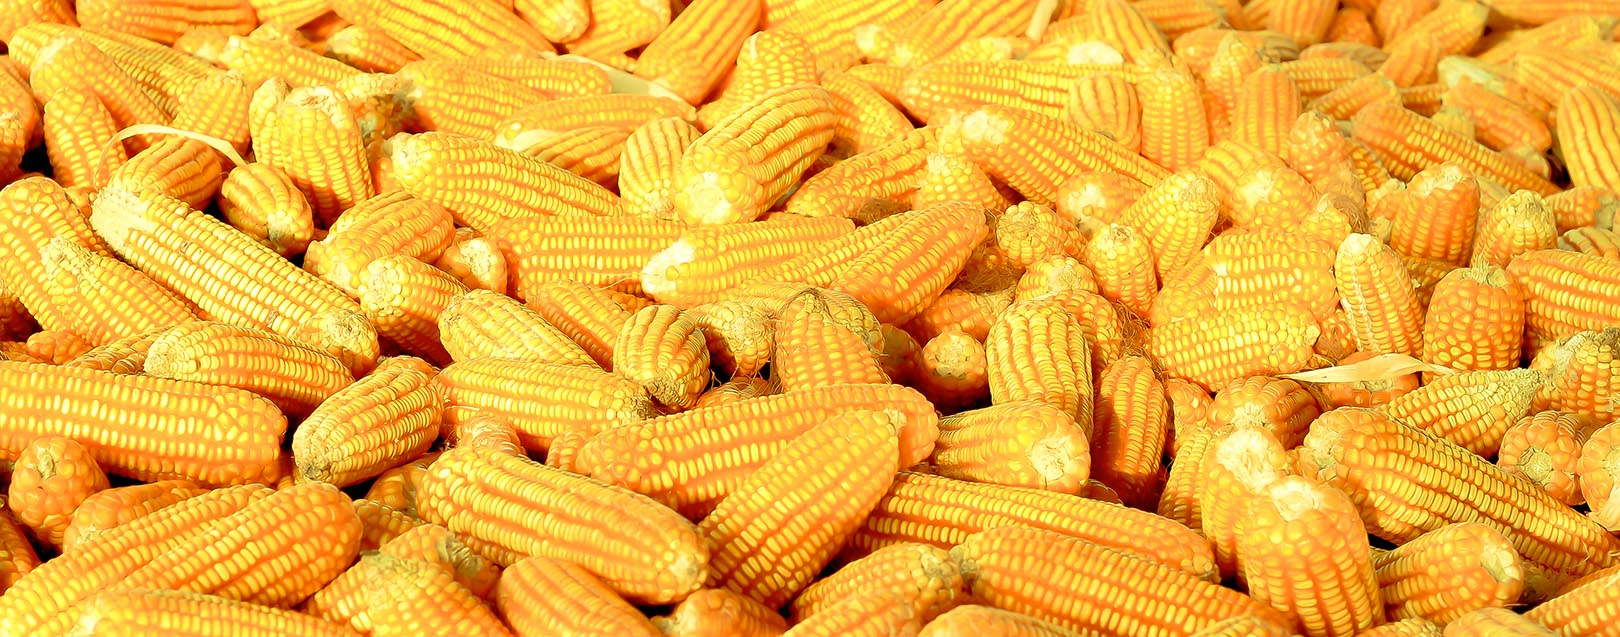 Maize productivity up 4.8 times: Radha Mohan Singh